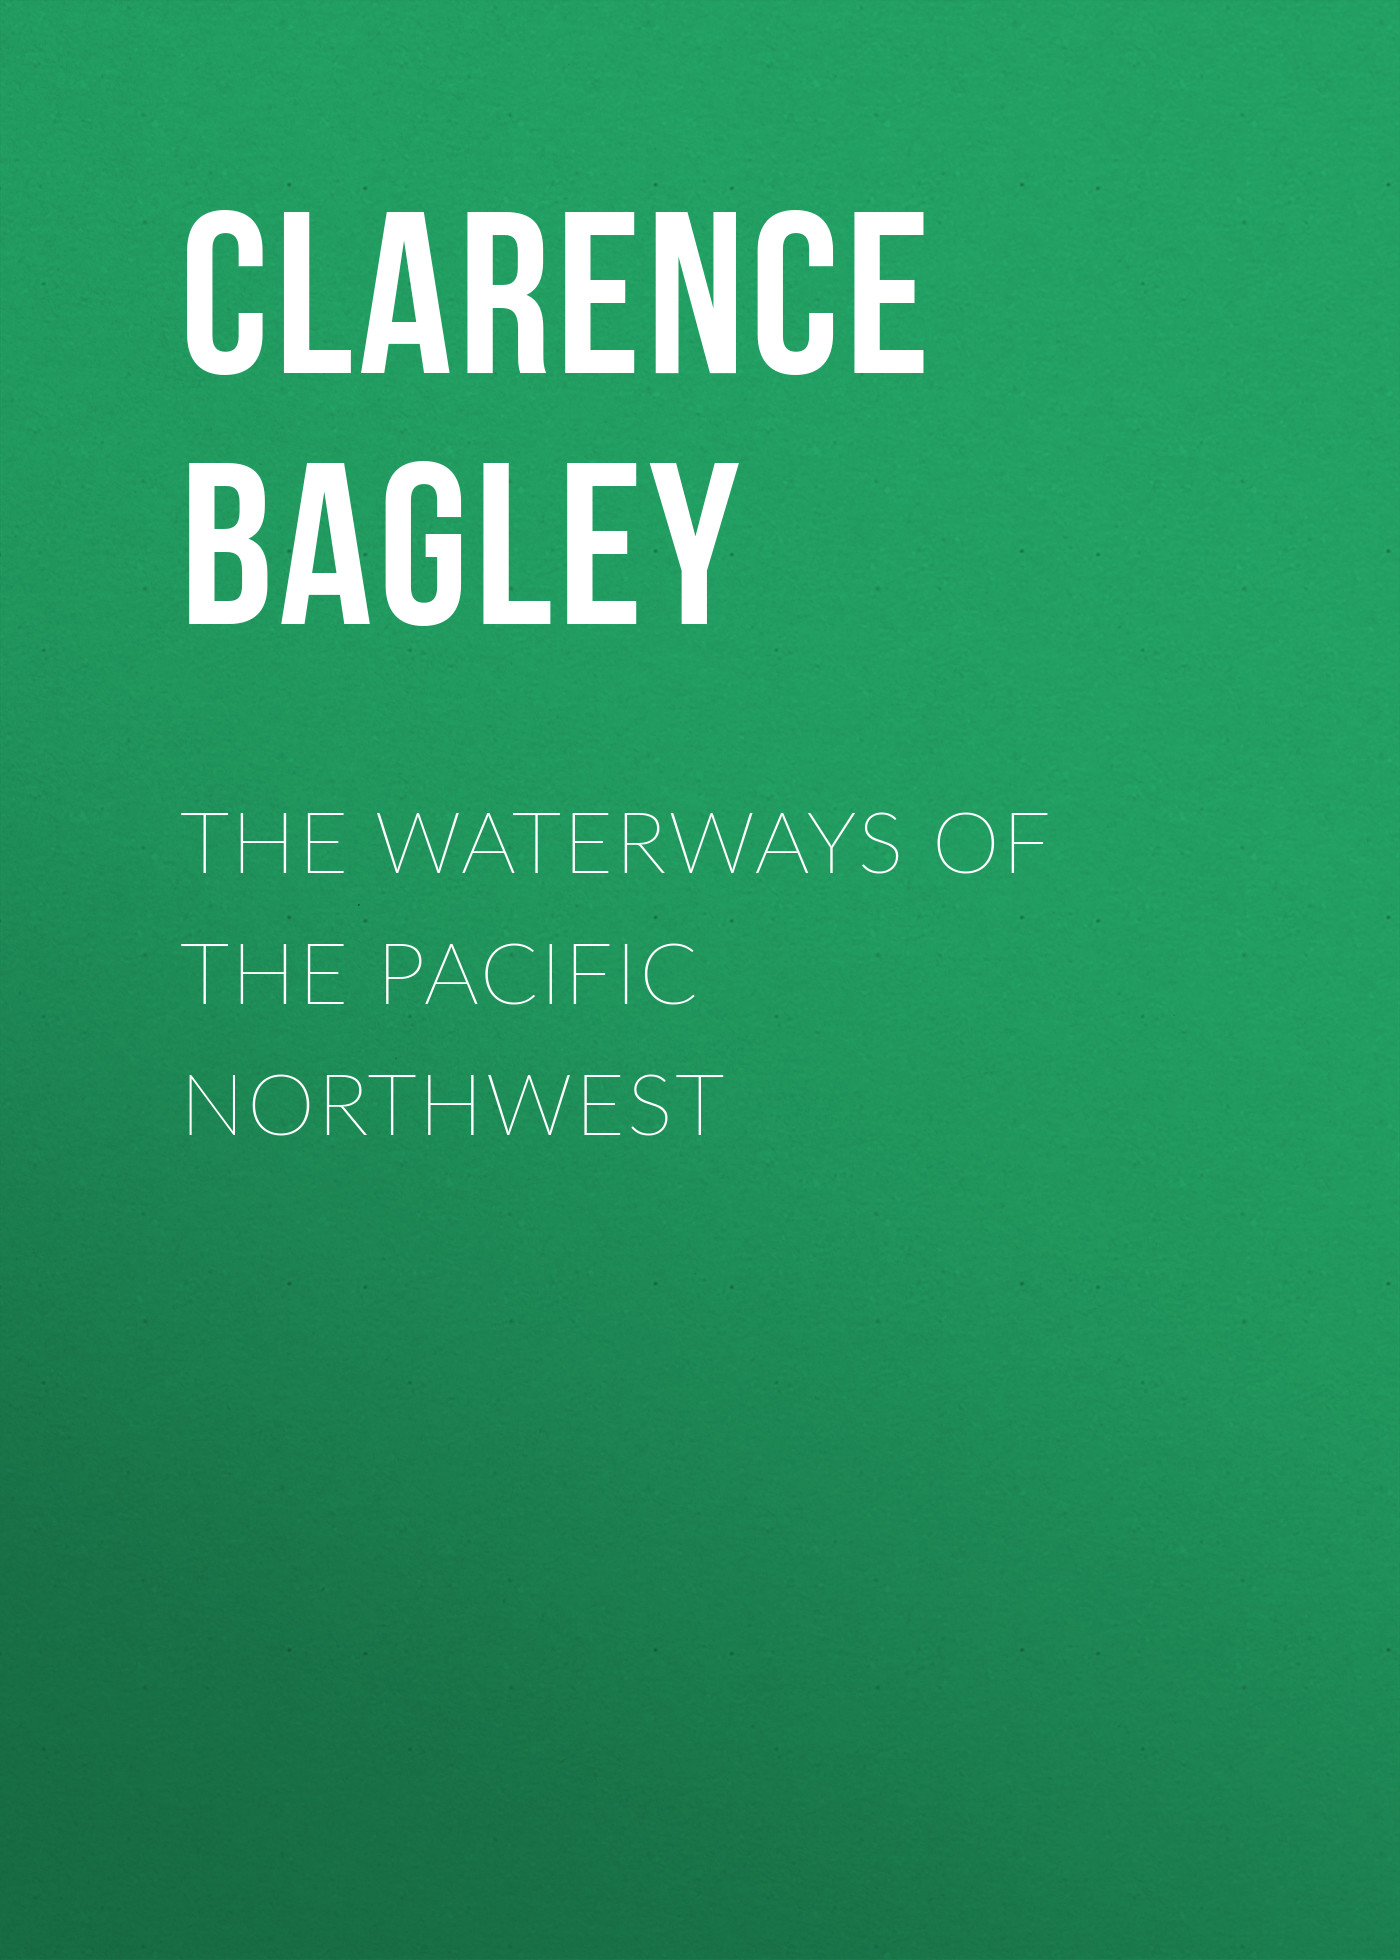 the waterways of the pacific northwest